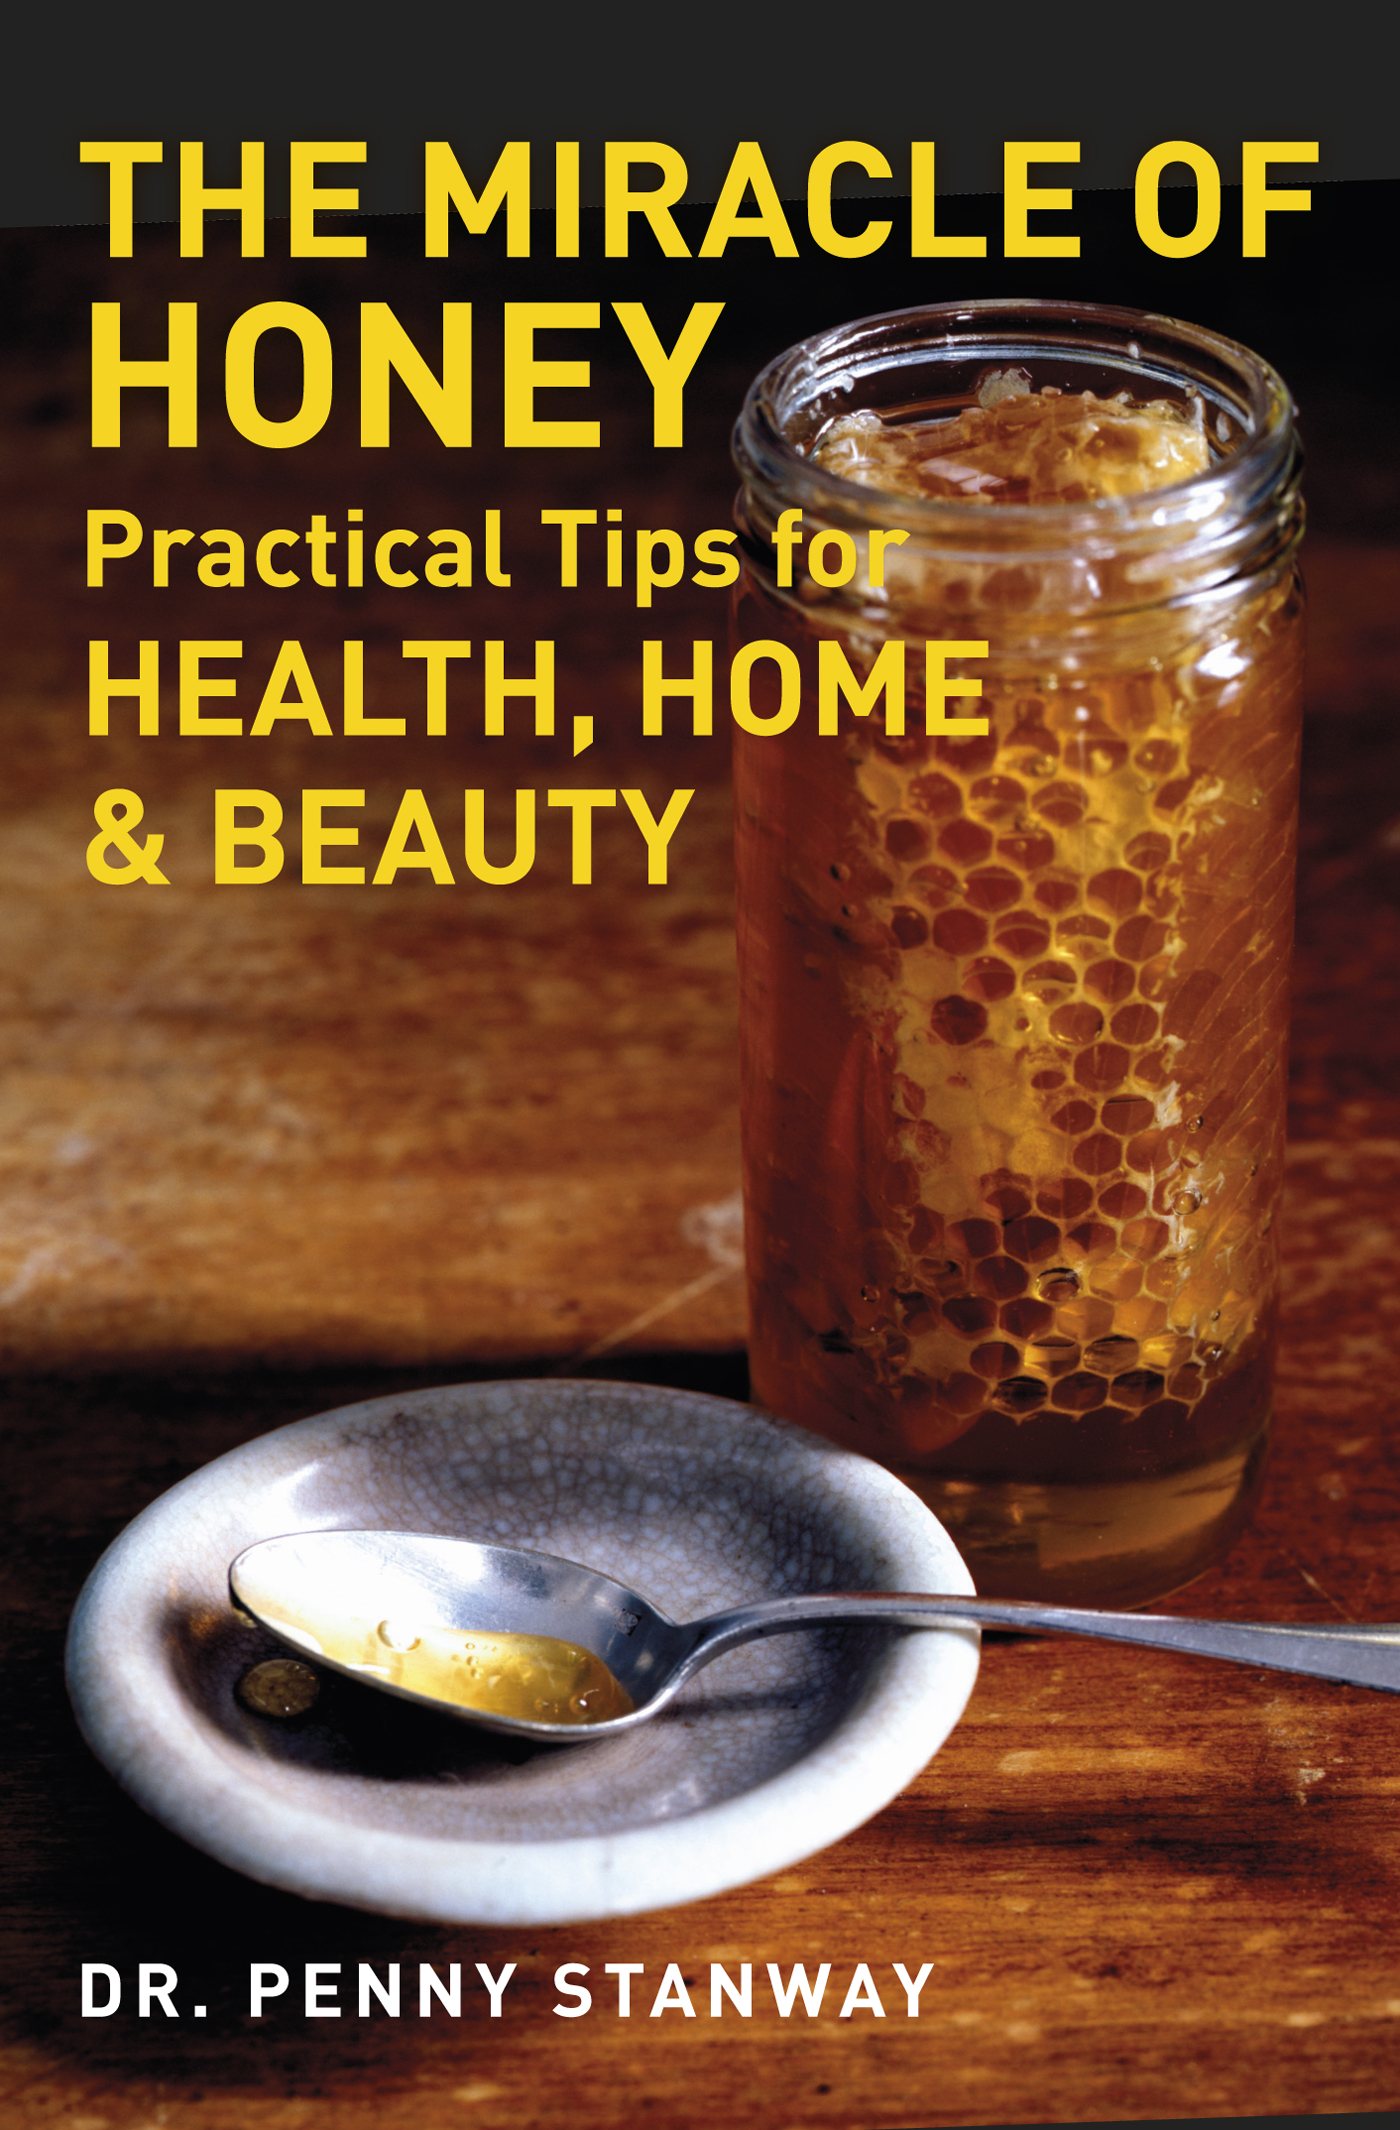 The Miracle of Honey - Practical Tips for Health,  Home & Beauty